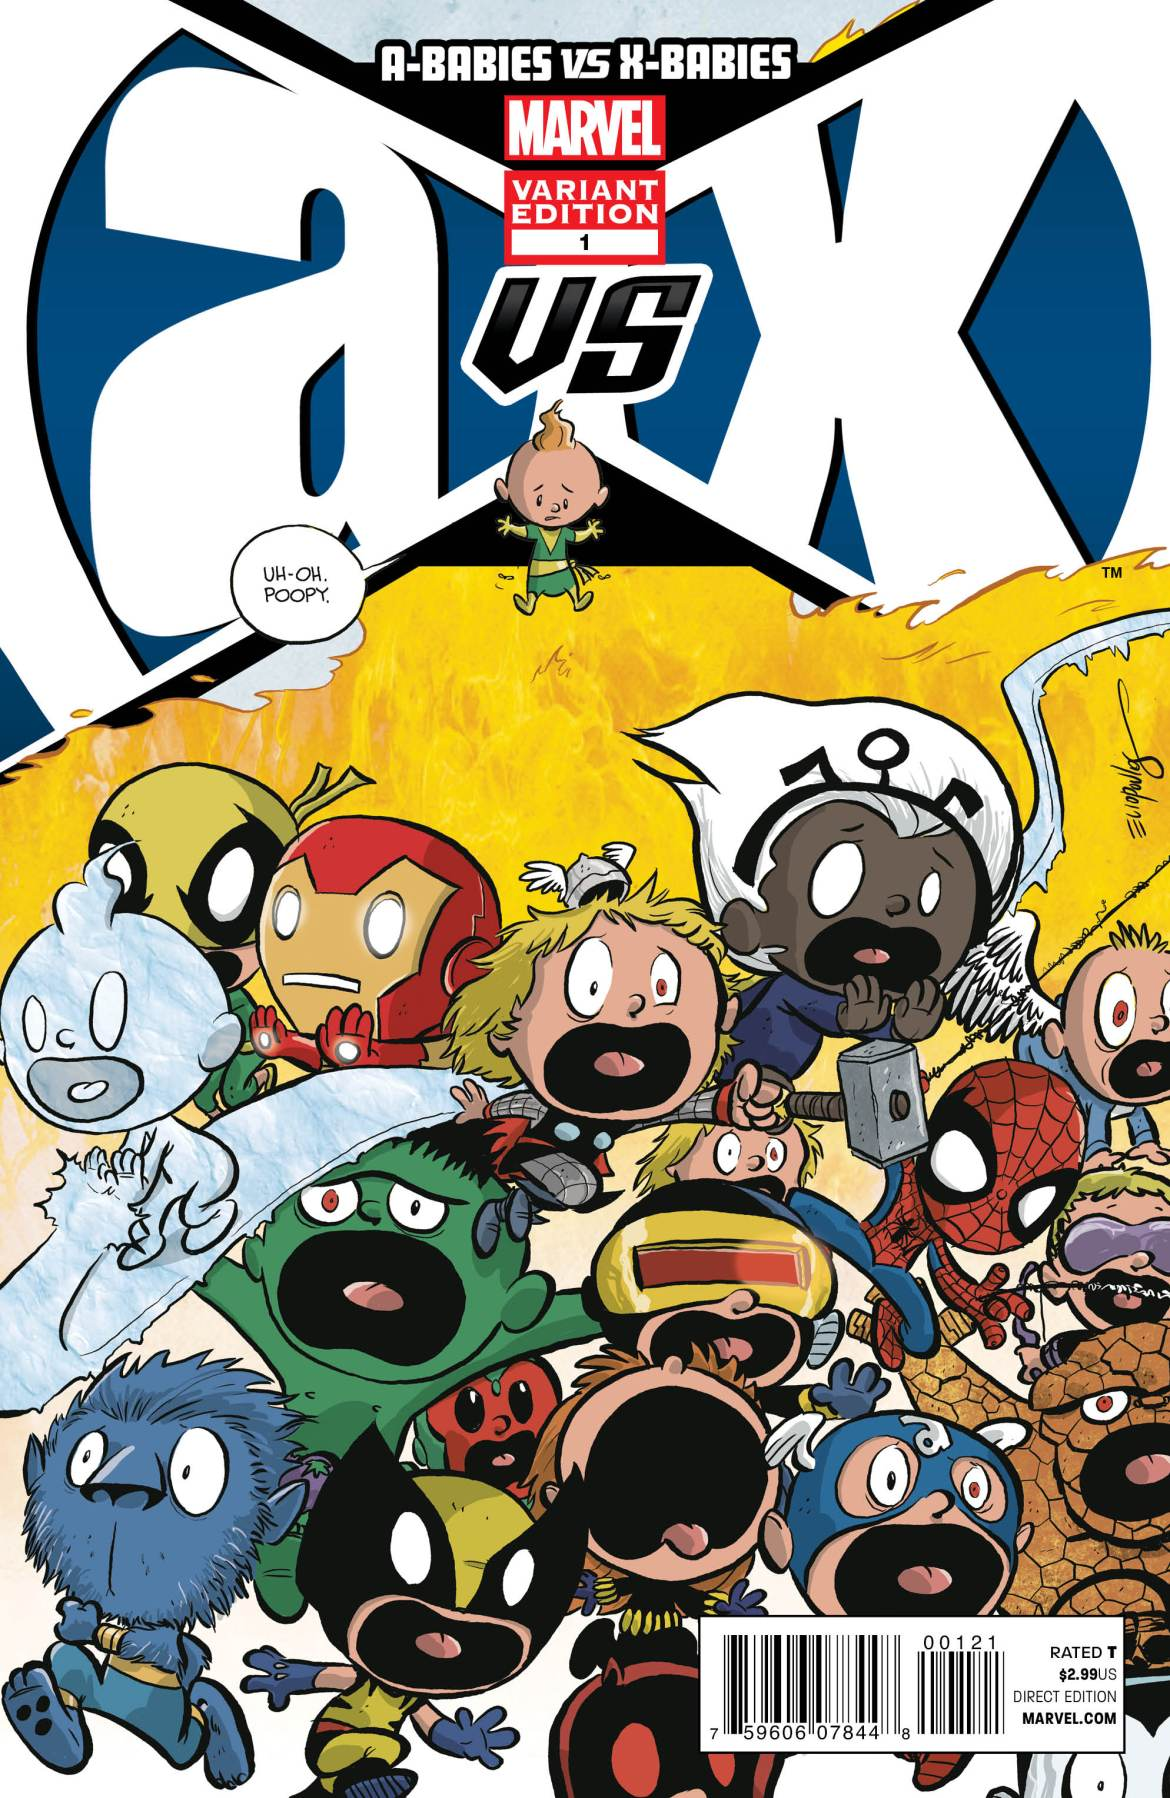 ABabiesVSXBabies_1_CoverVariant Chris Eliopoulos draws variant cover for A-BABIES VS. X-BABIES #1